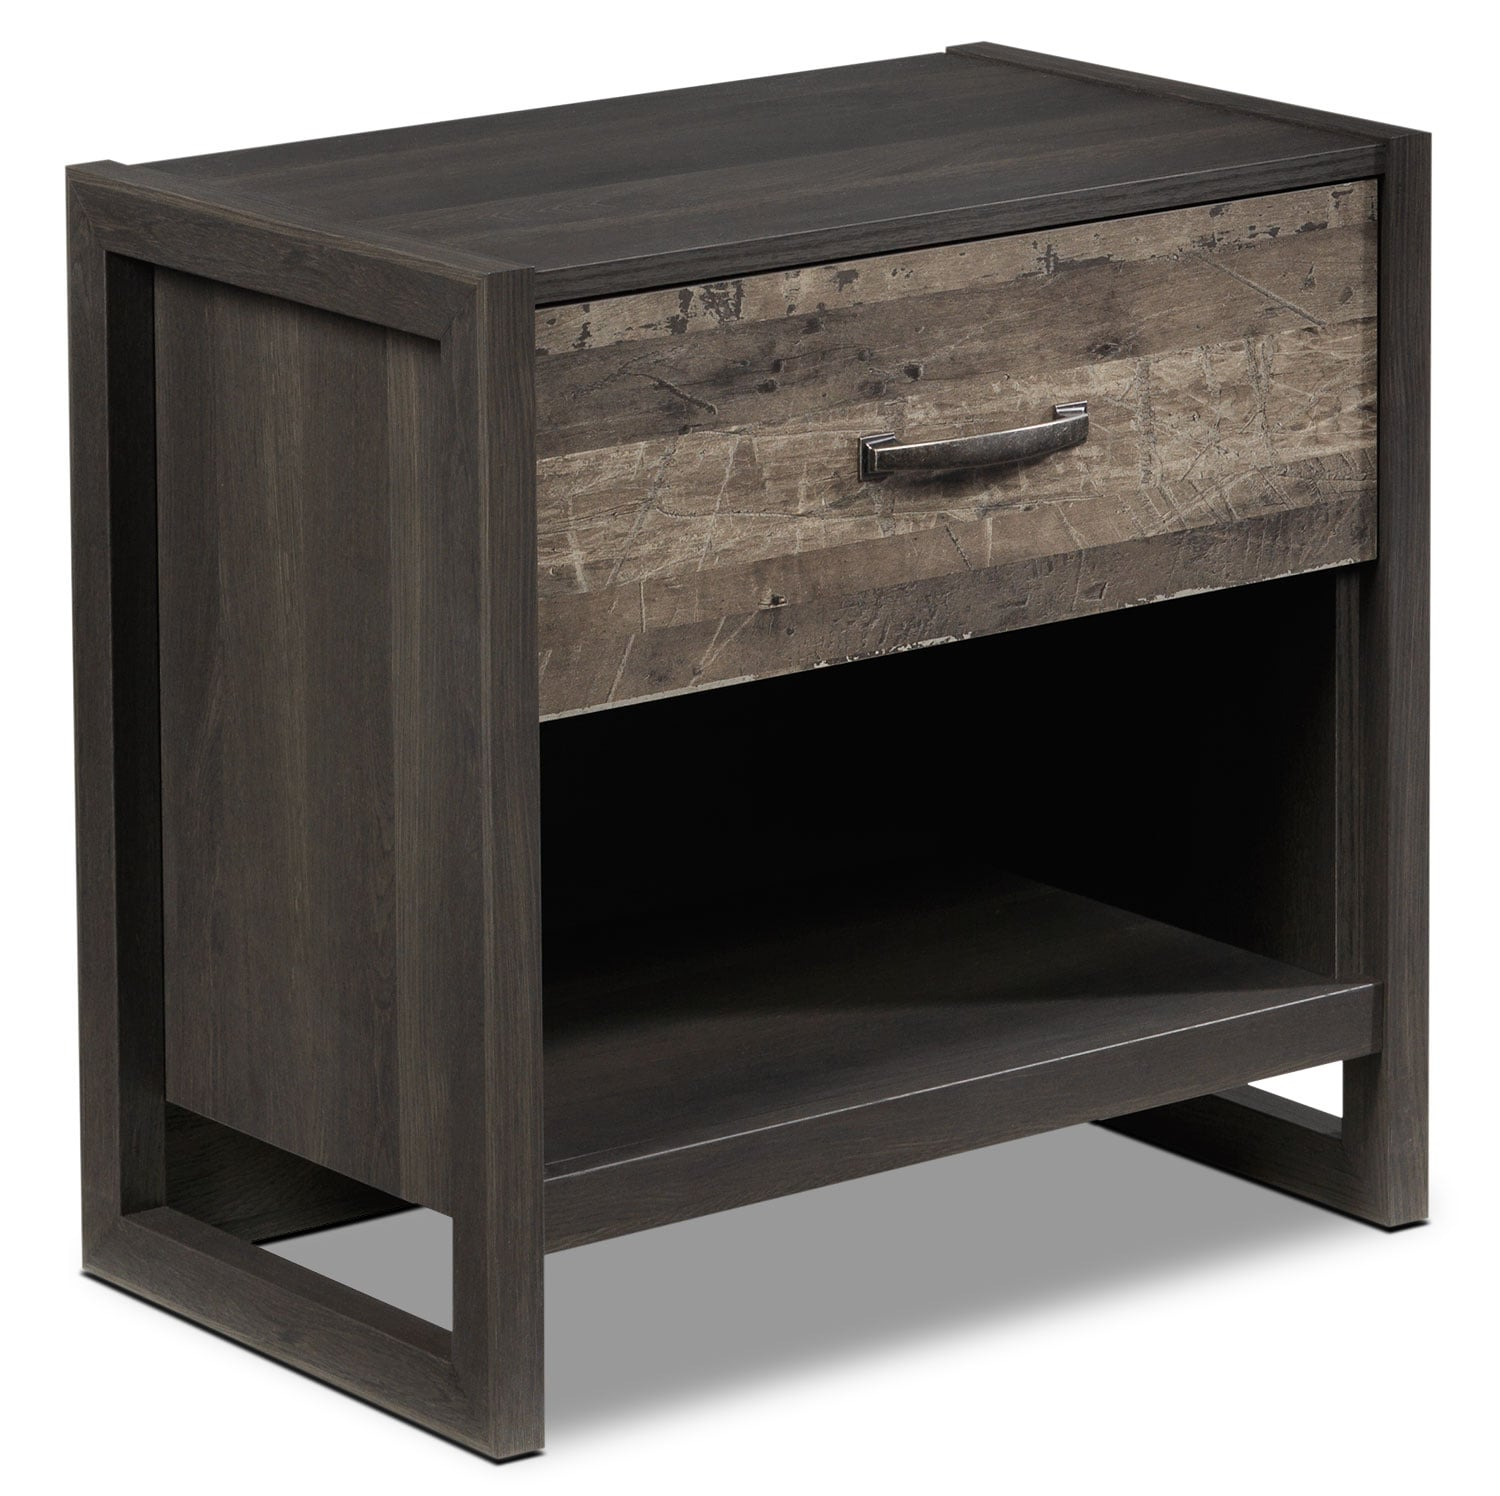 Hudson Night Table - Rustic Brown